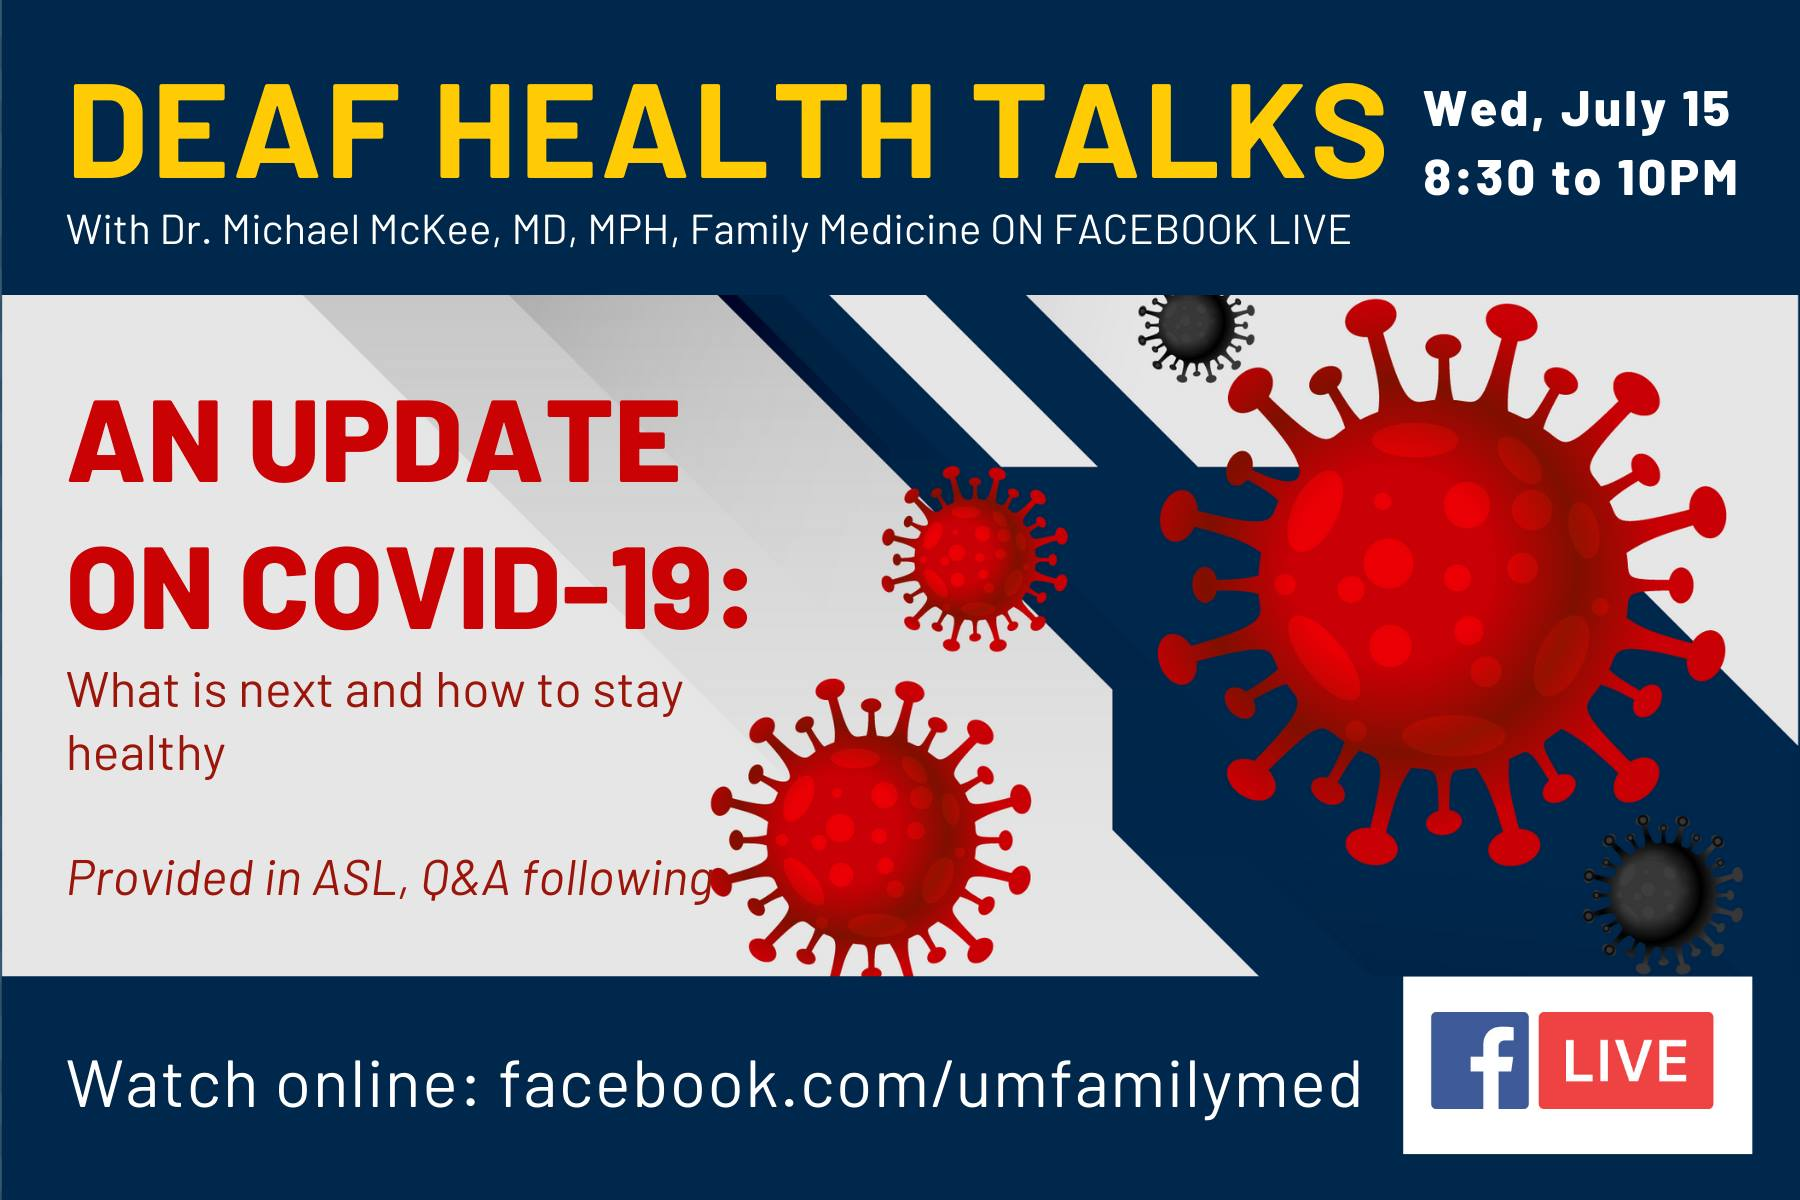 Deaf Health talks with Dr. Michael McKee Update on covid 19 Provided in AQ and A follow